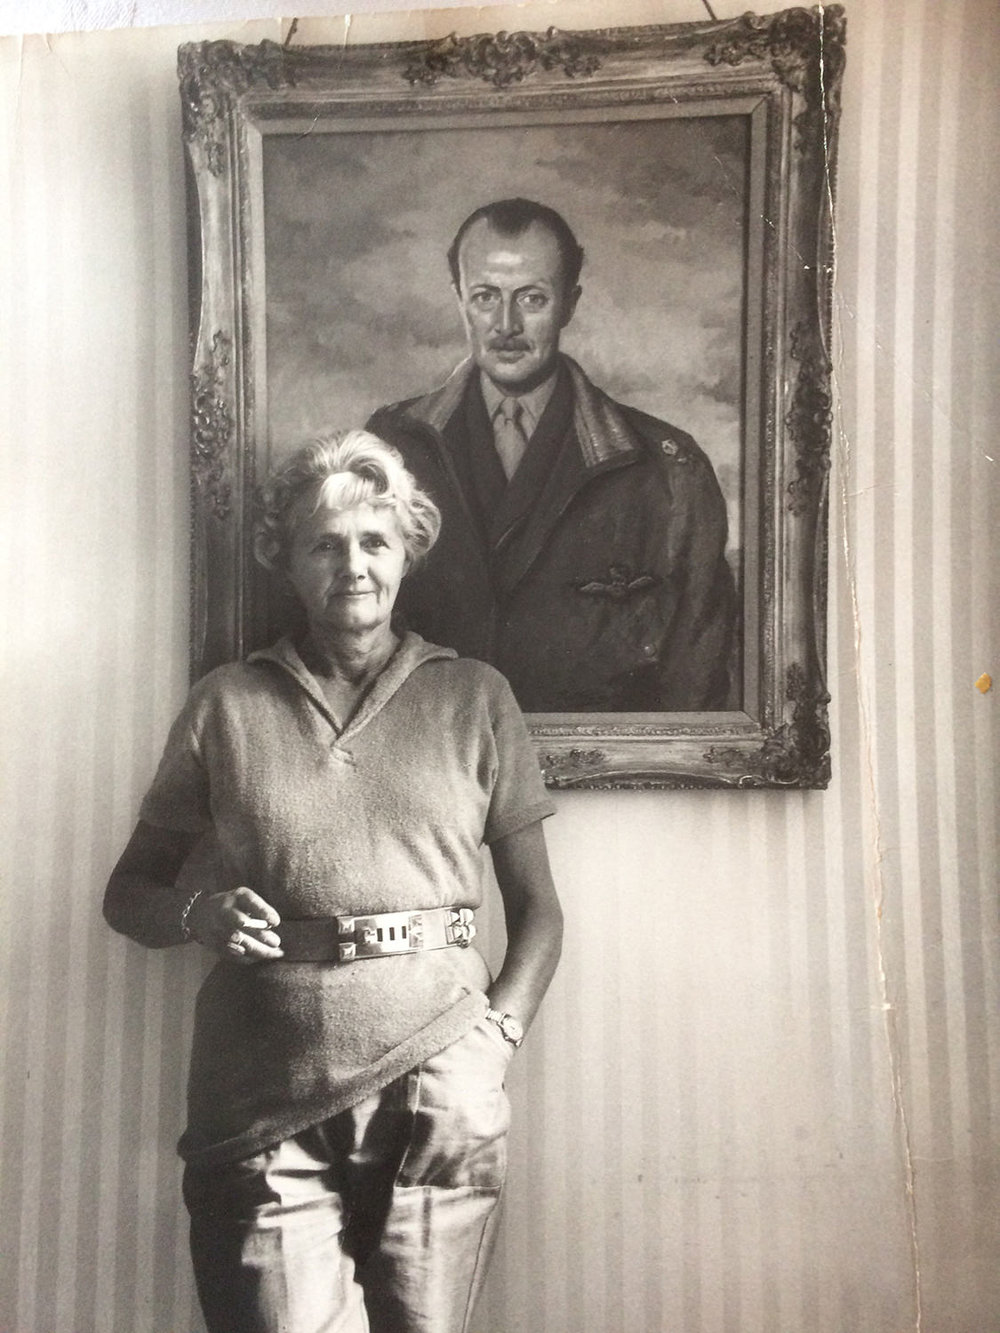 Daphne-in-front-of-a-portrait-of-her-husband-Browning.jpg